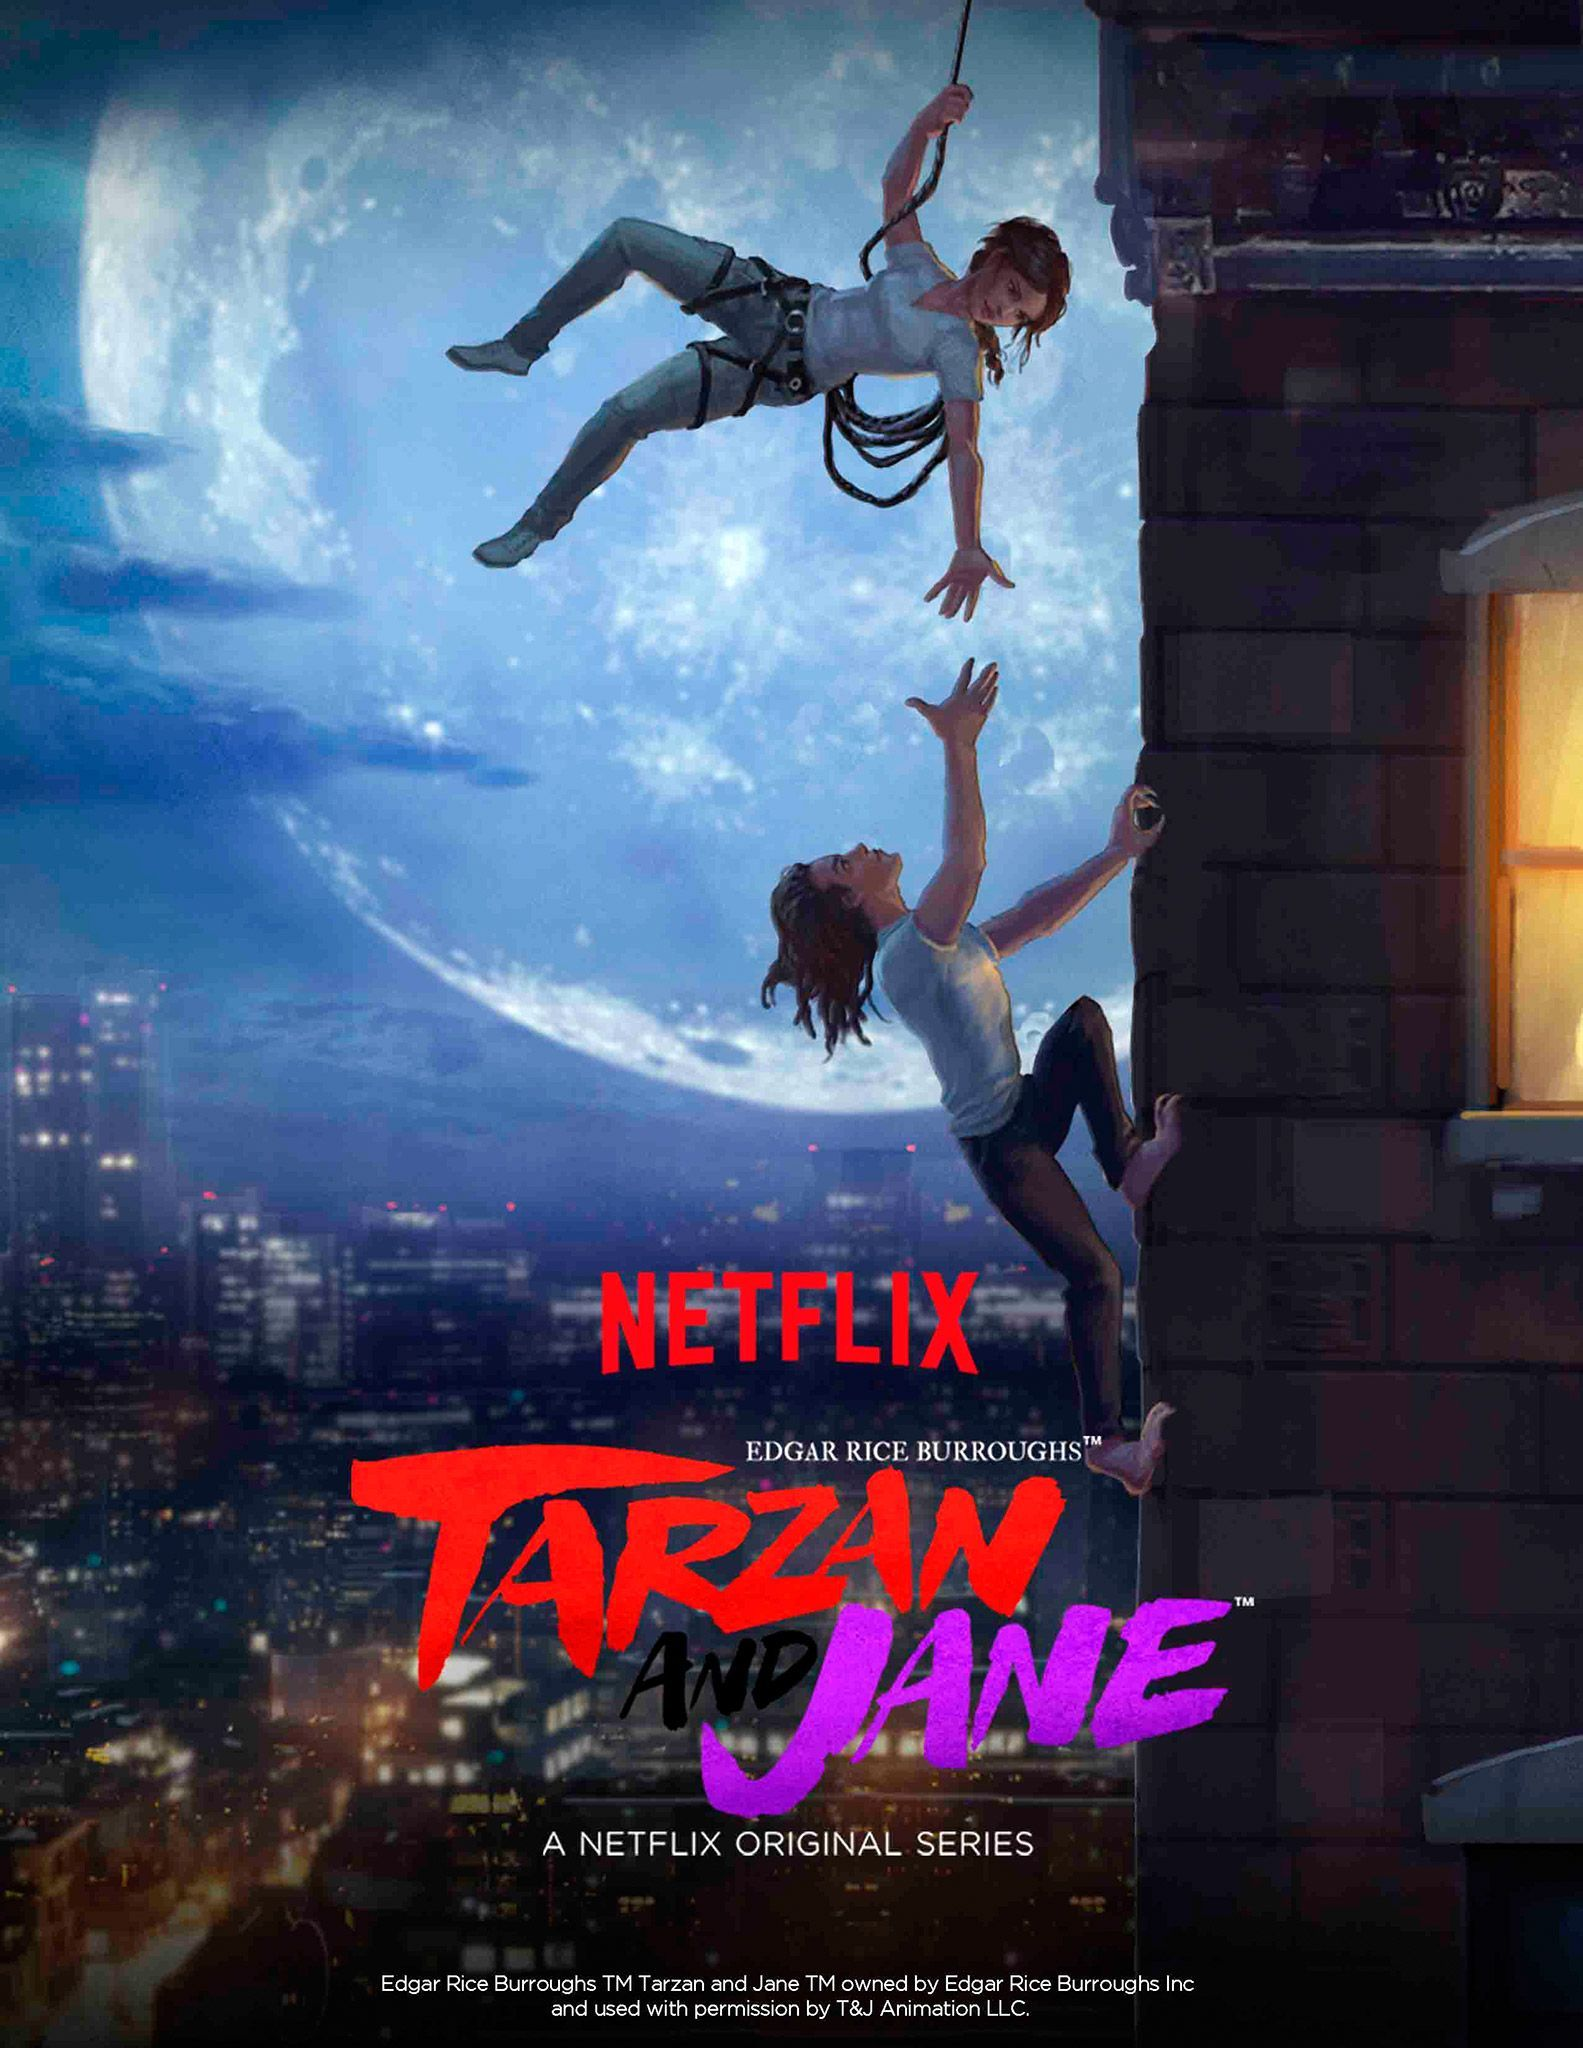 Netflix Is Going To Make January So Much Better Tarzan